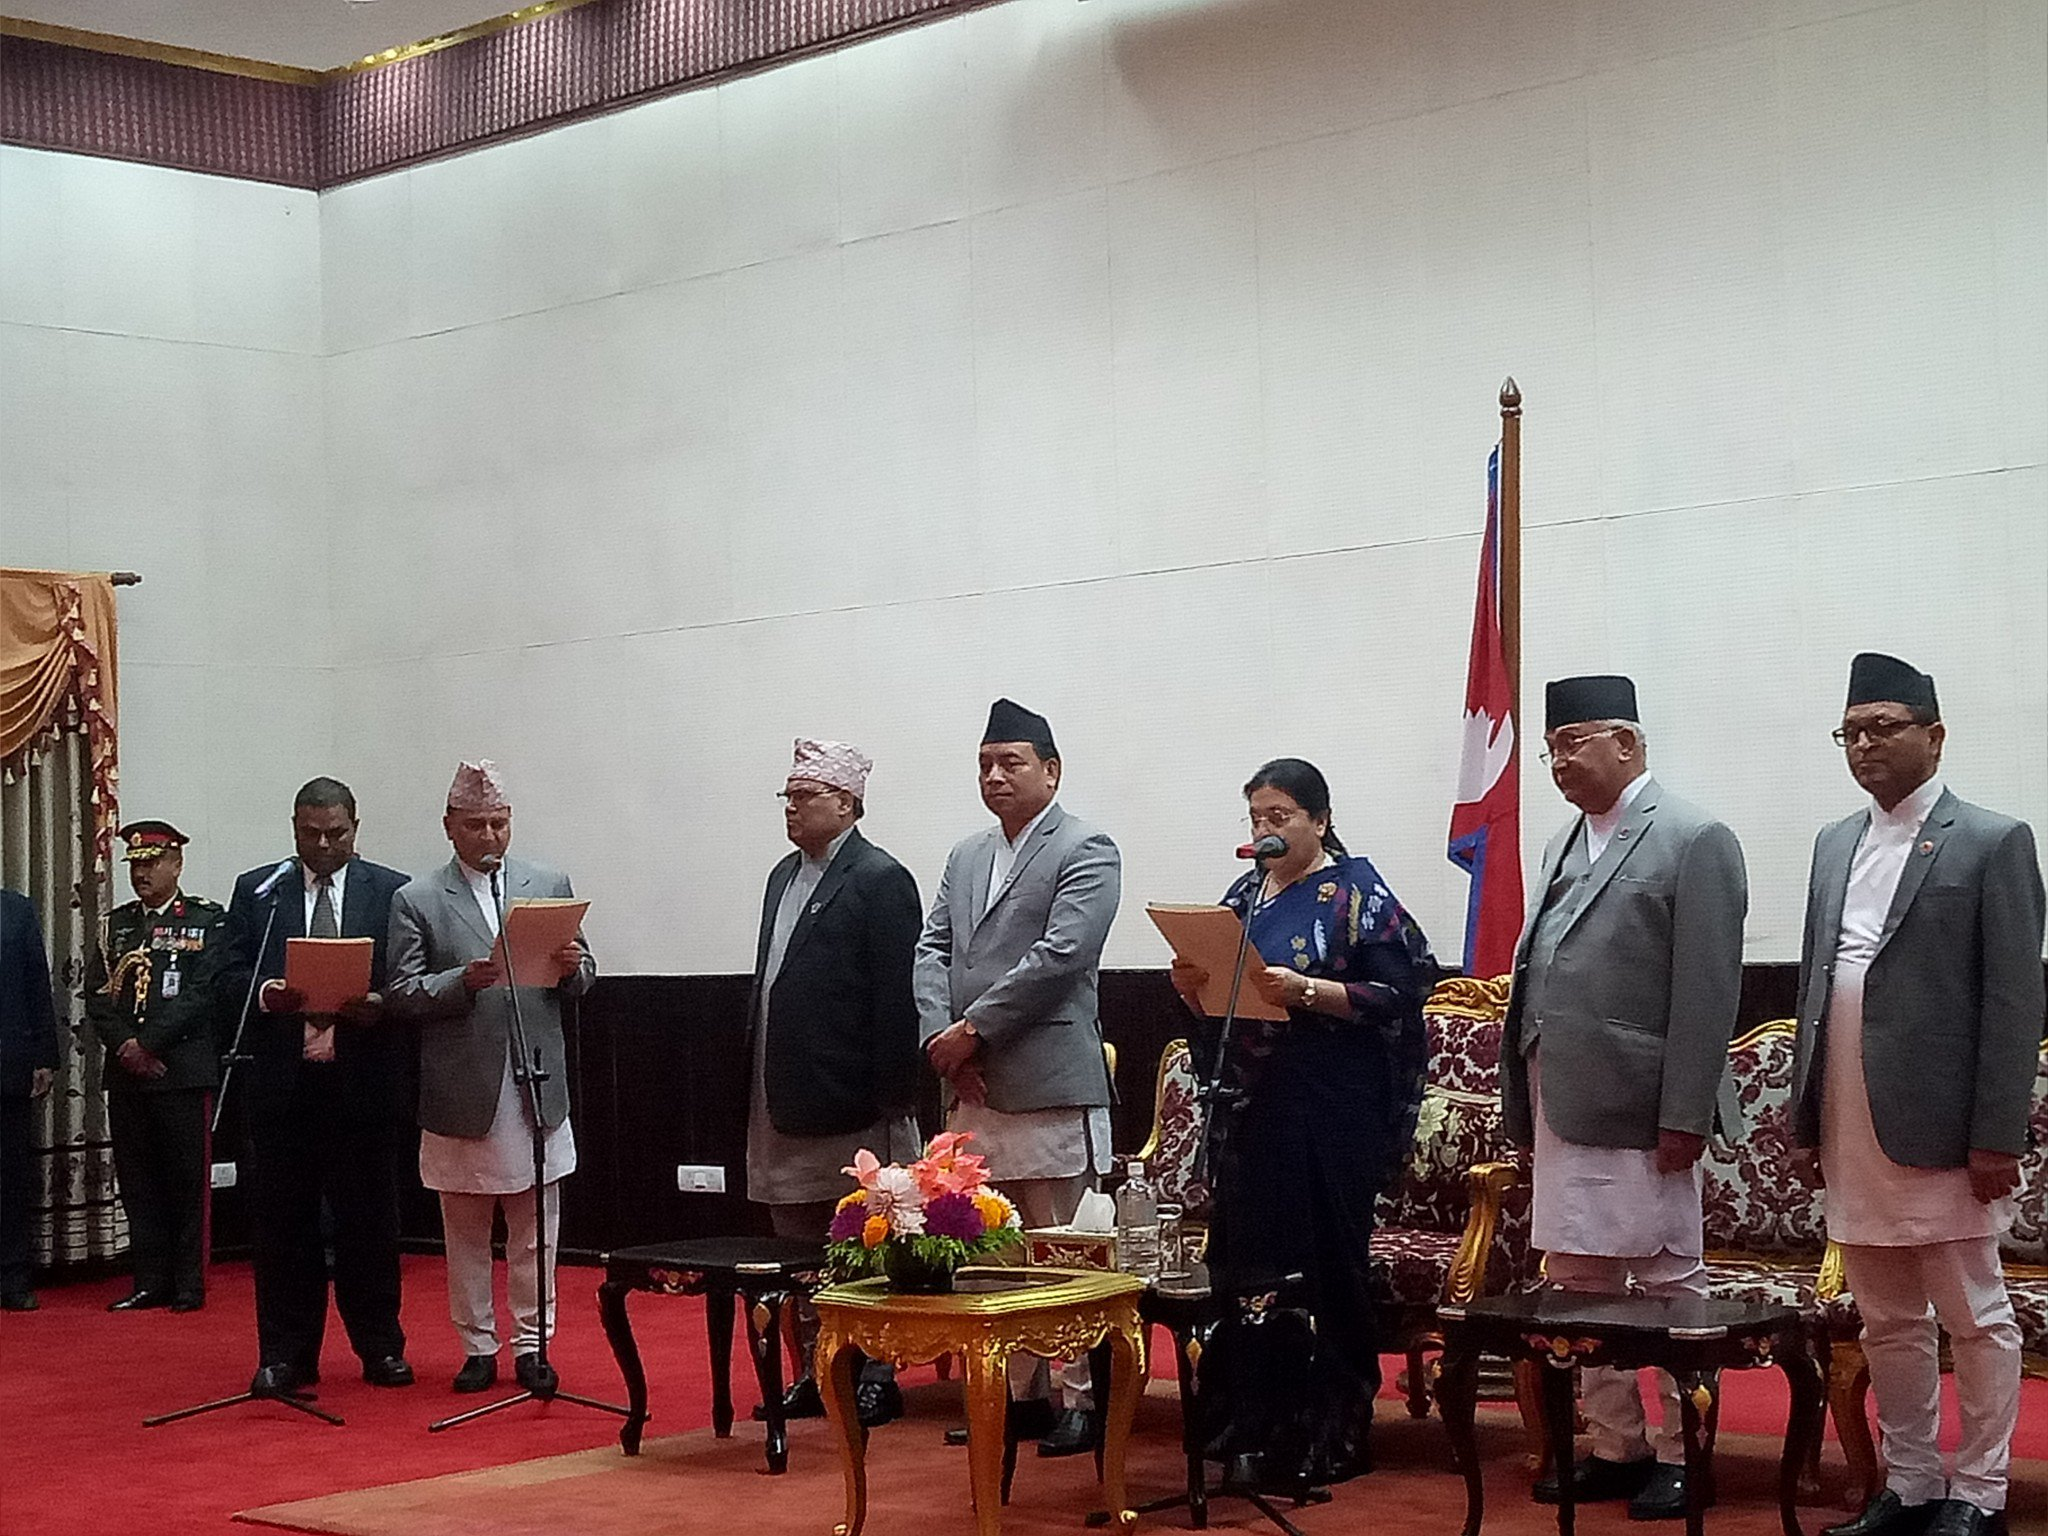 Forum formally joins government, President appoints two